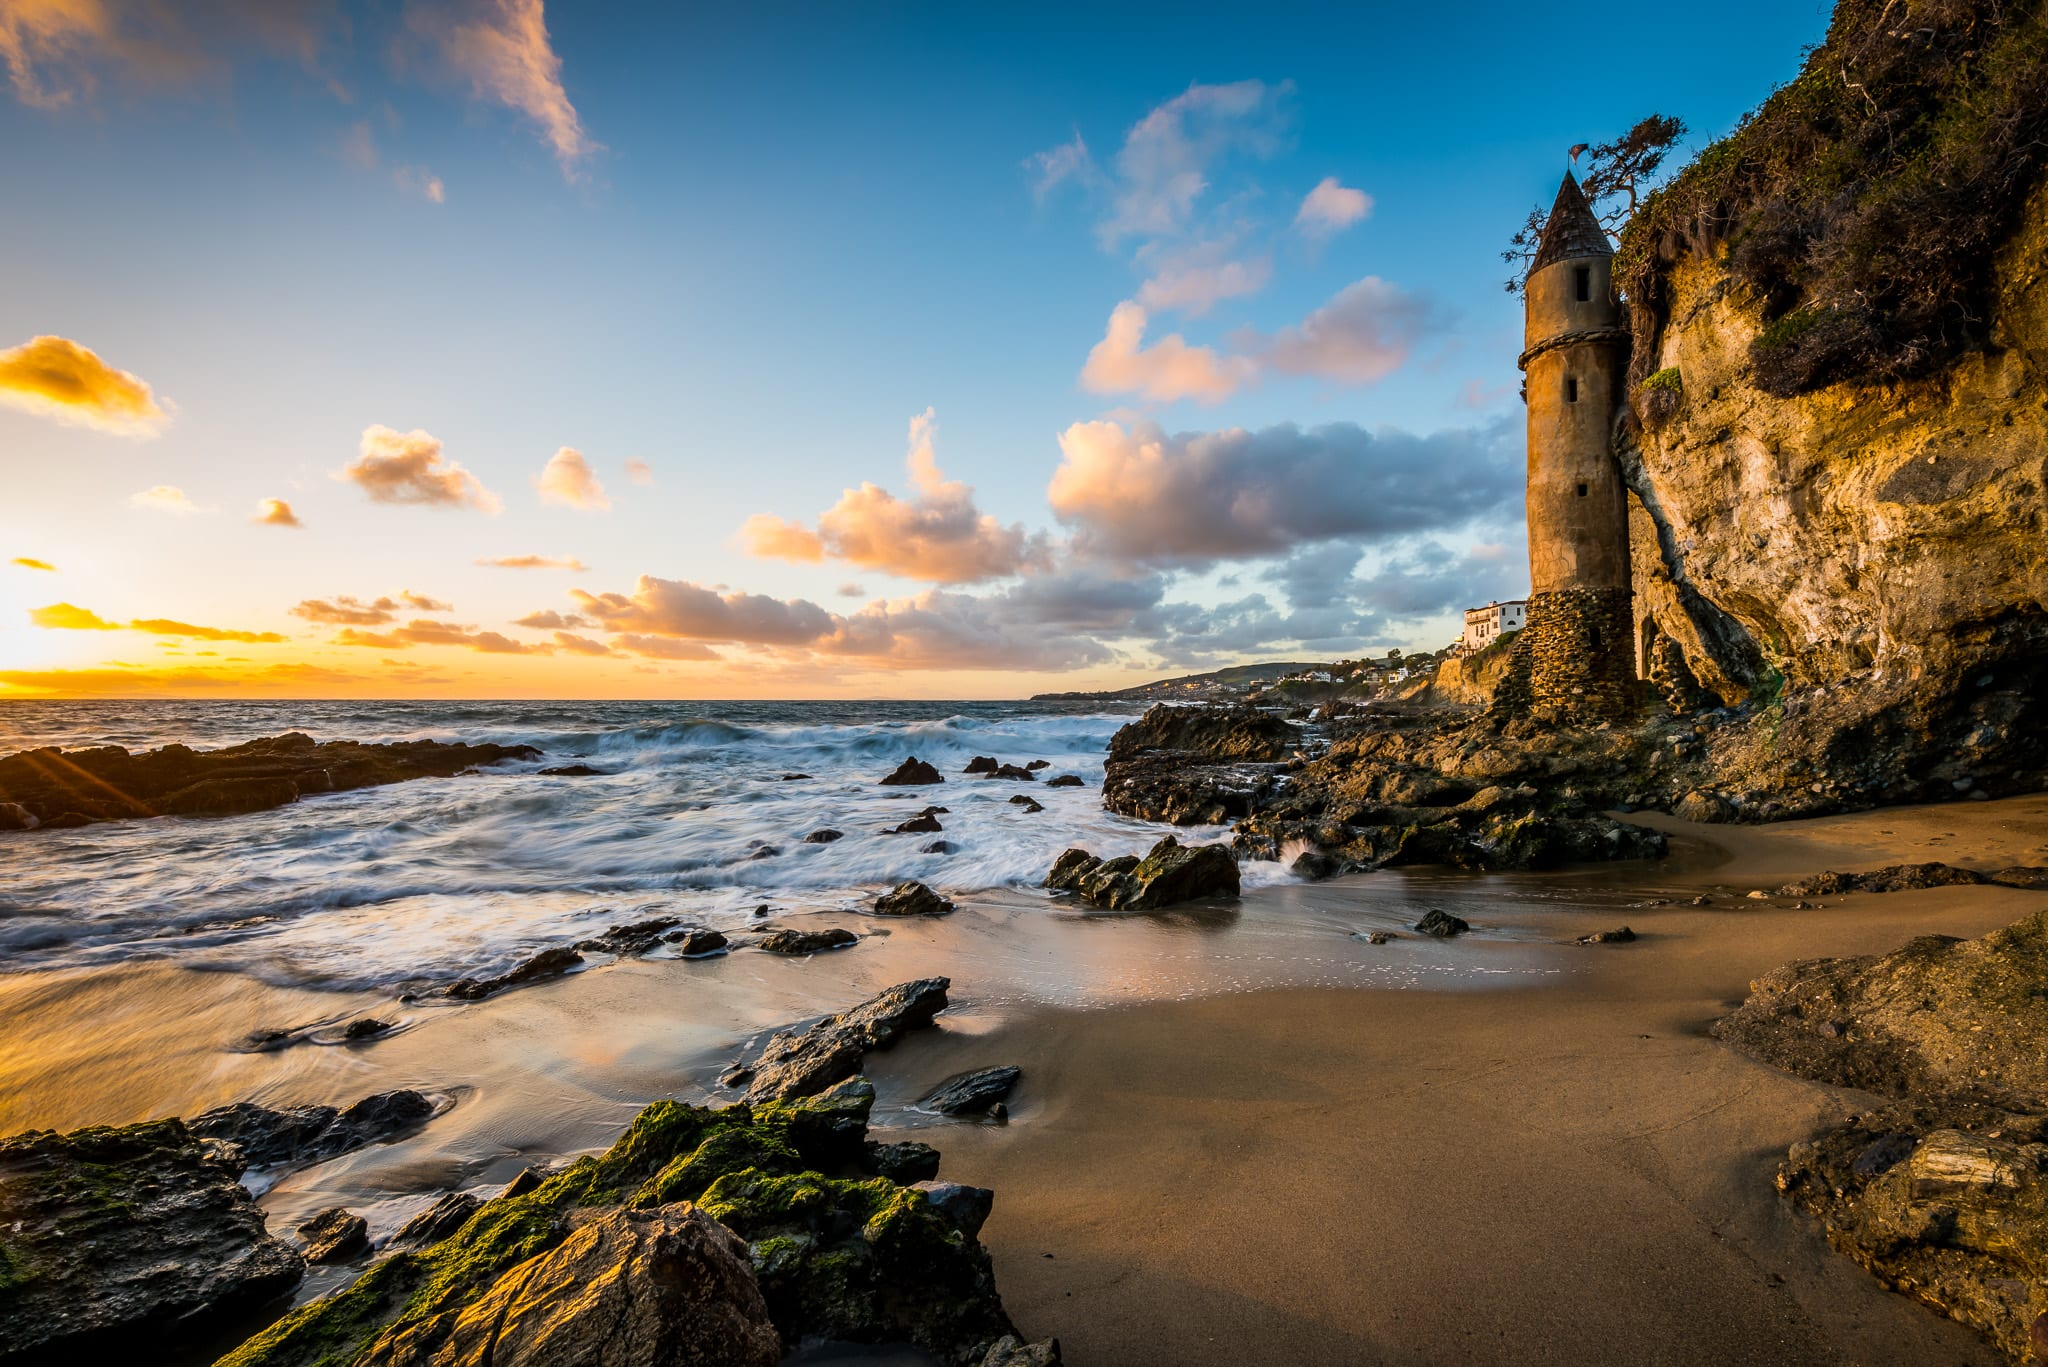 Long exposure wide angle landscape photo of Pirate Tower at Victoria Beach in Laguna Beach, during a colorful sunset sky